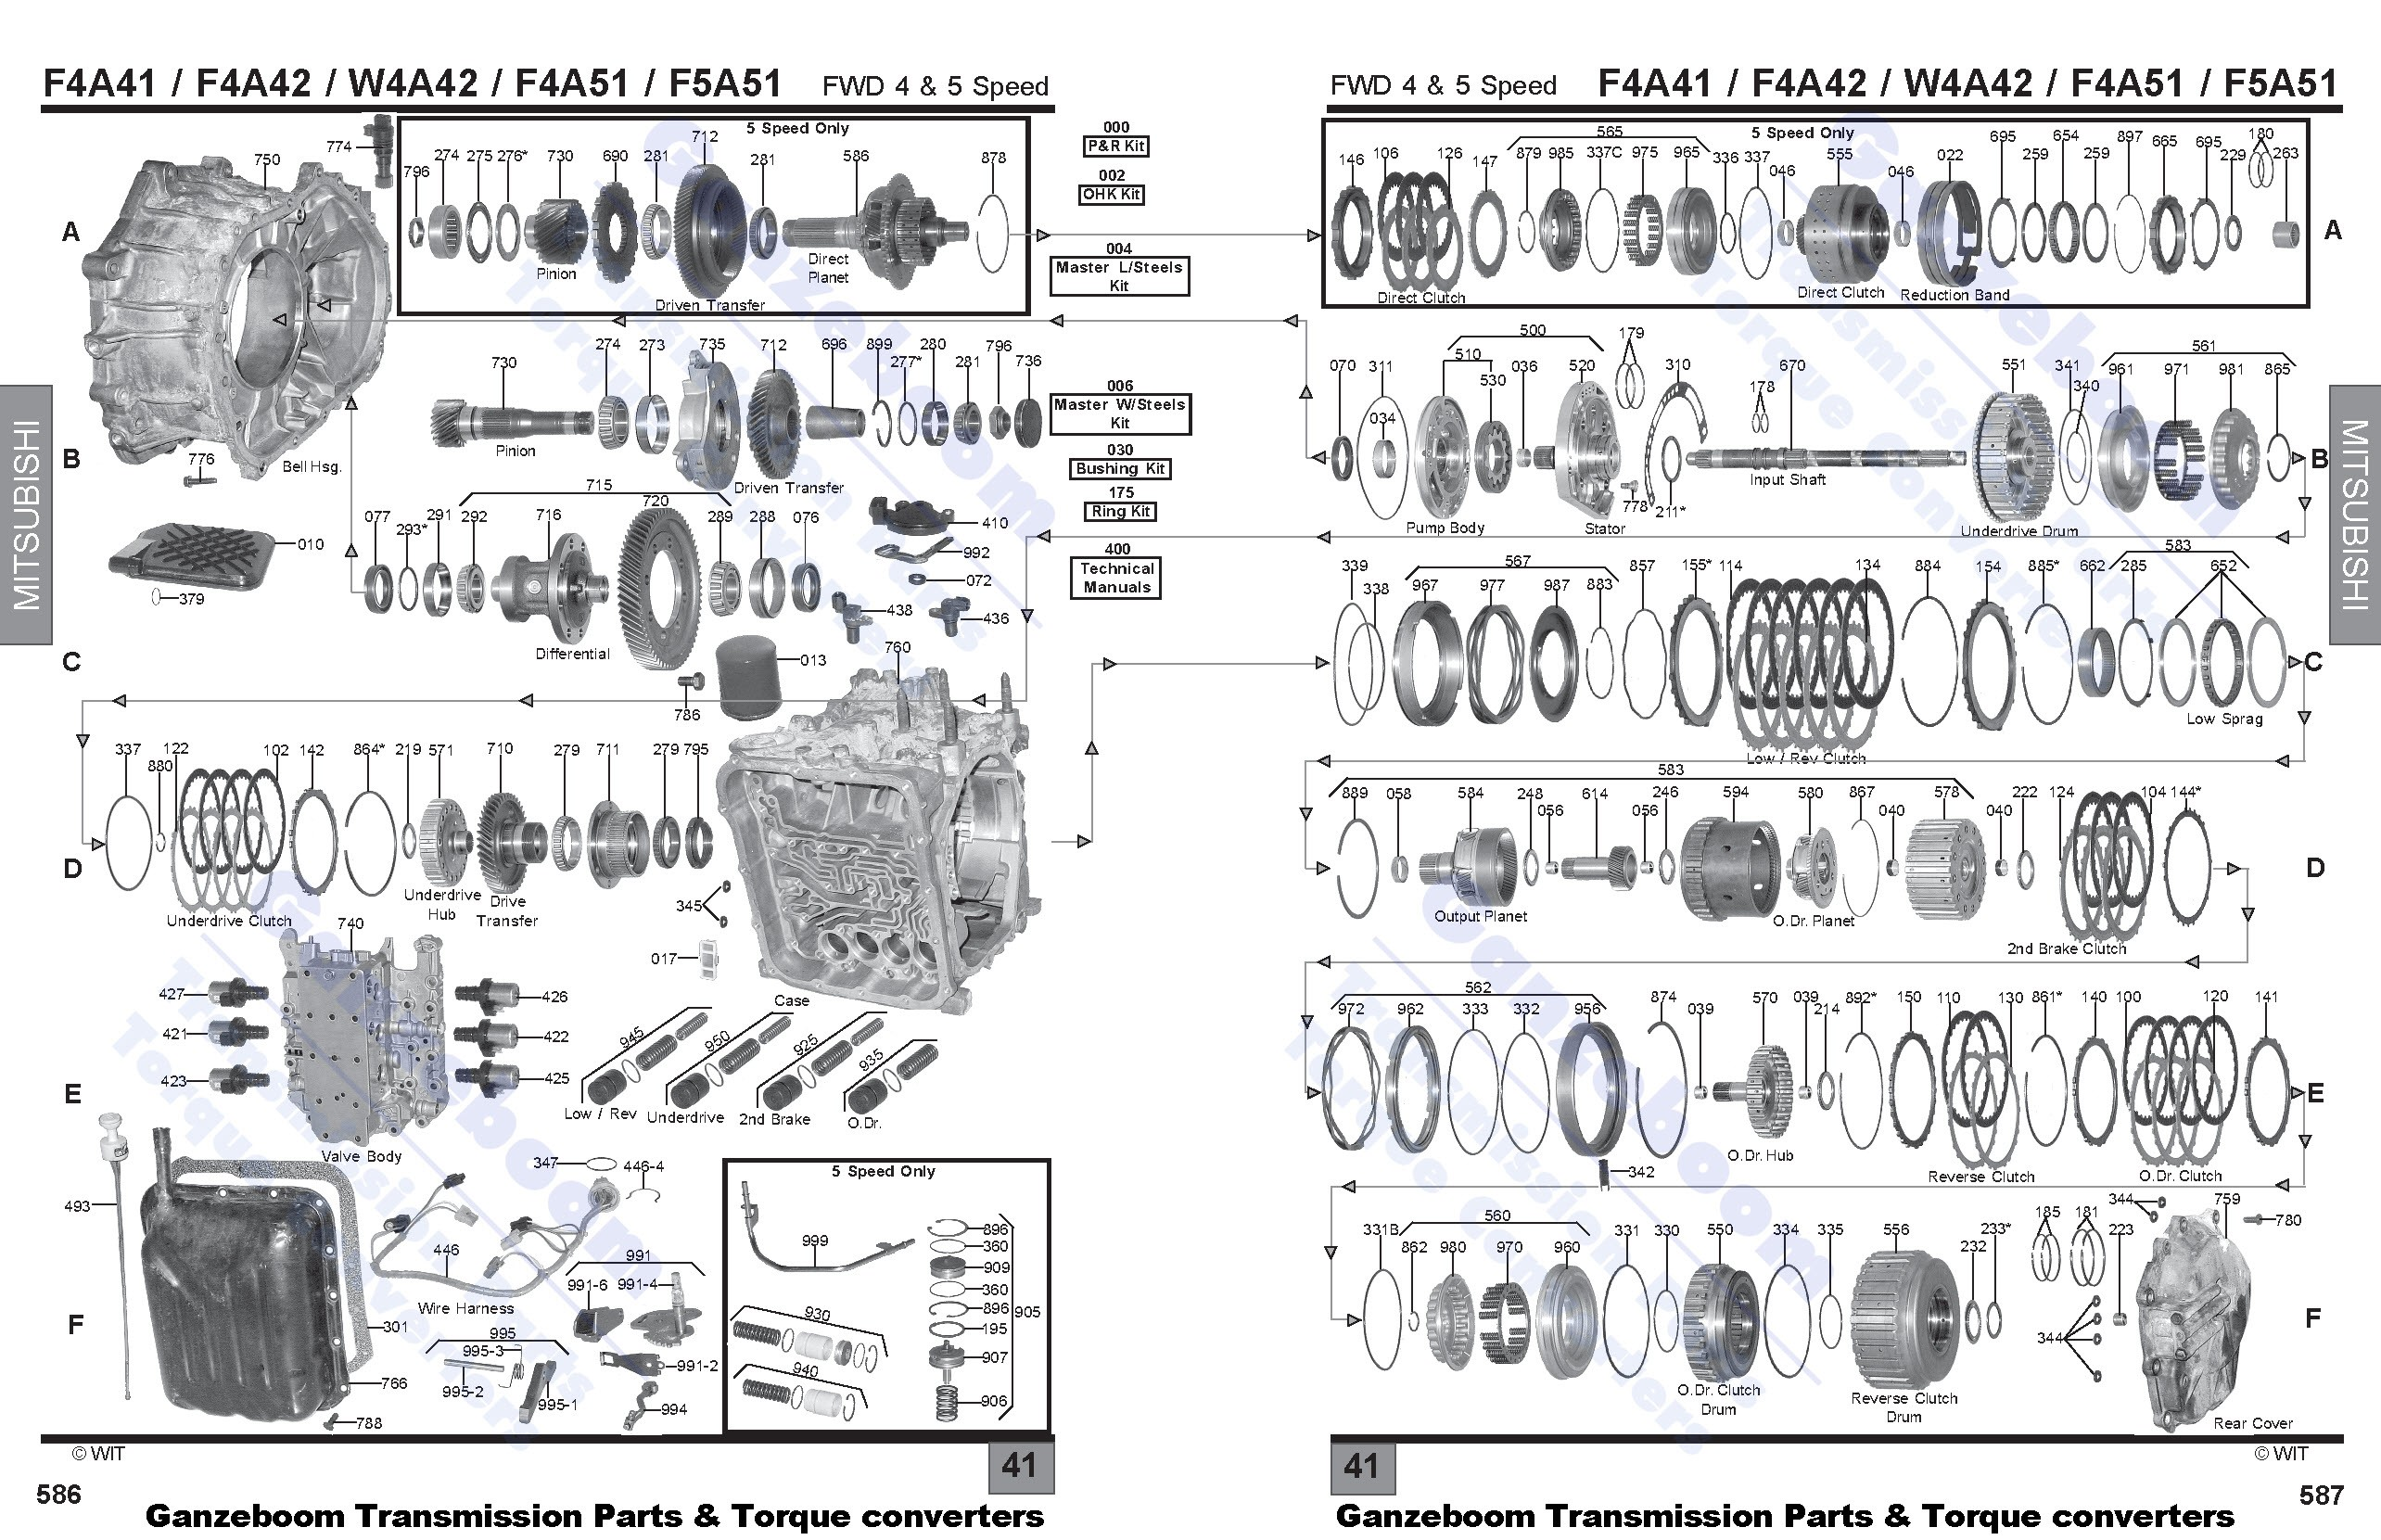 A5hf1 Diagram Reveolution Of Wiring Hyundai Santa Fe Engine F4a41 F4a51 F5a51 Rh Webshop Ganzeboom Net